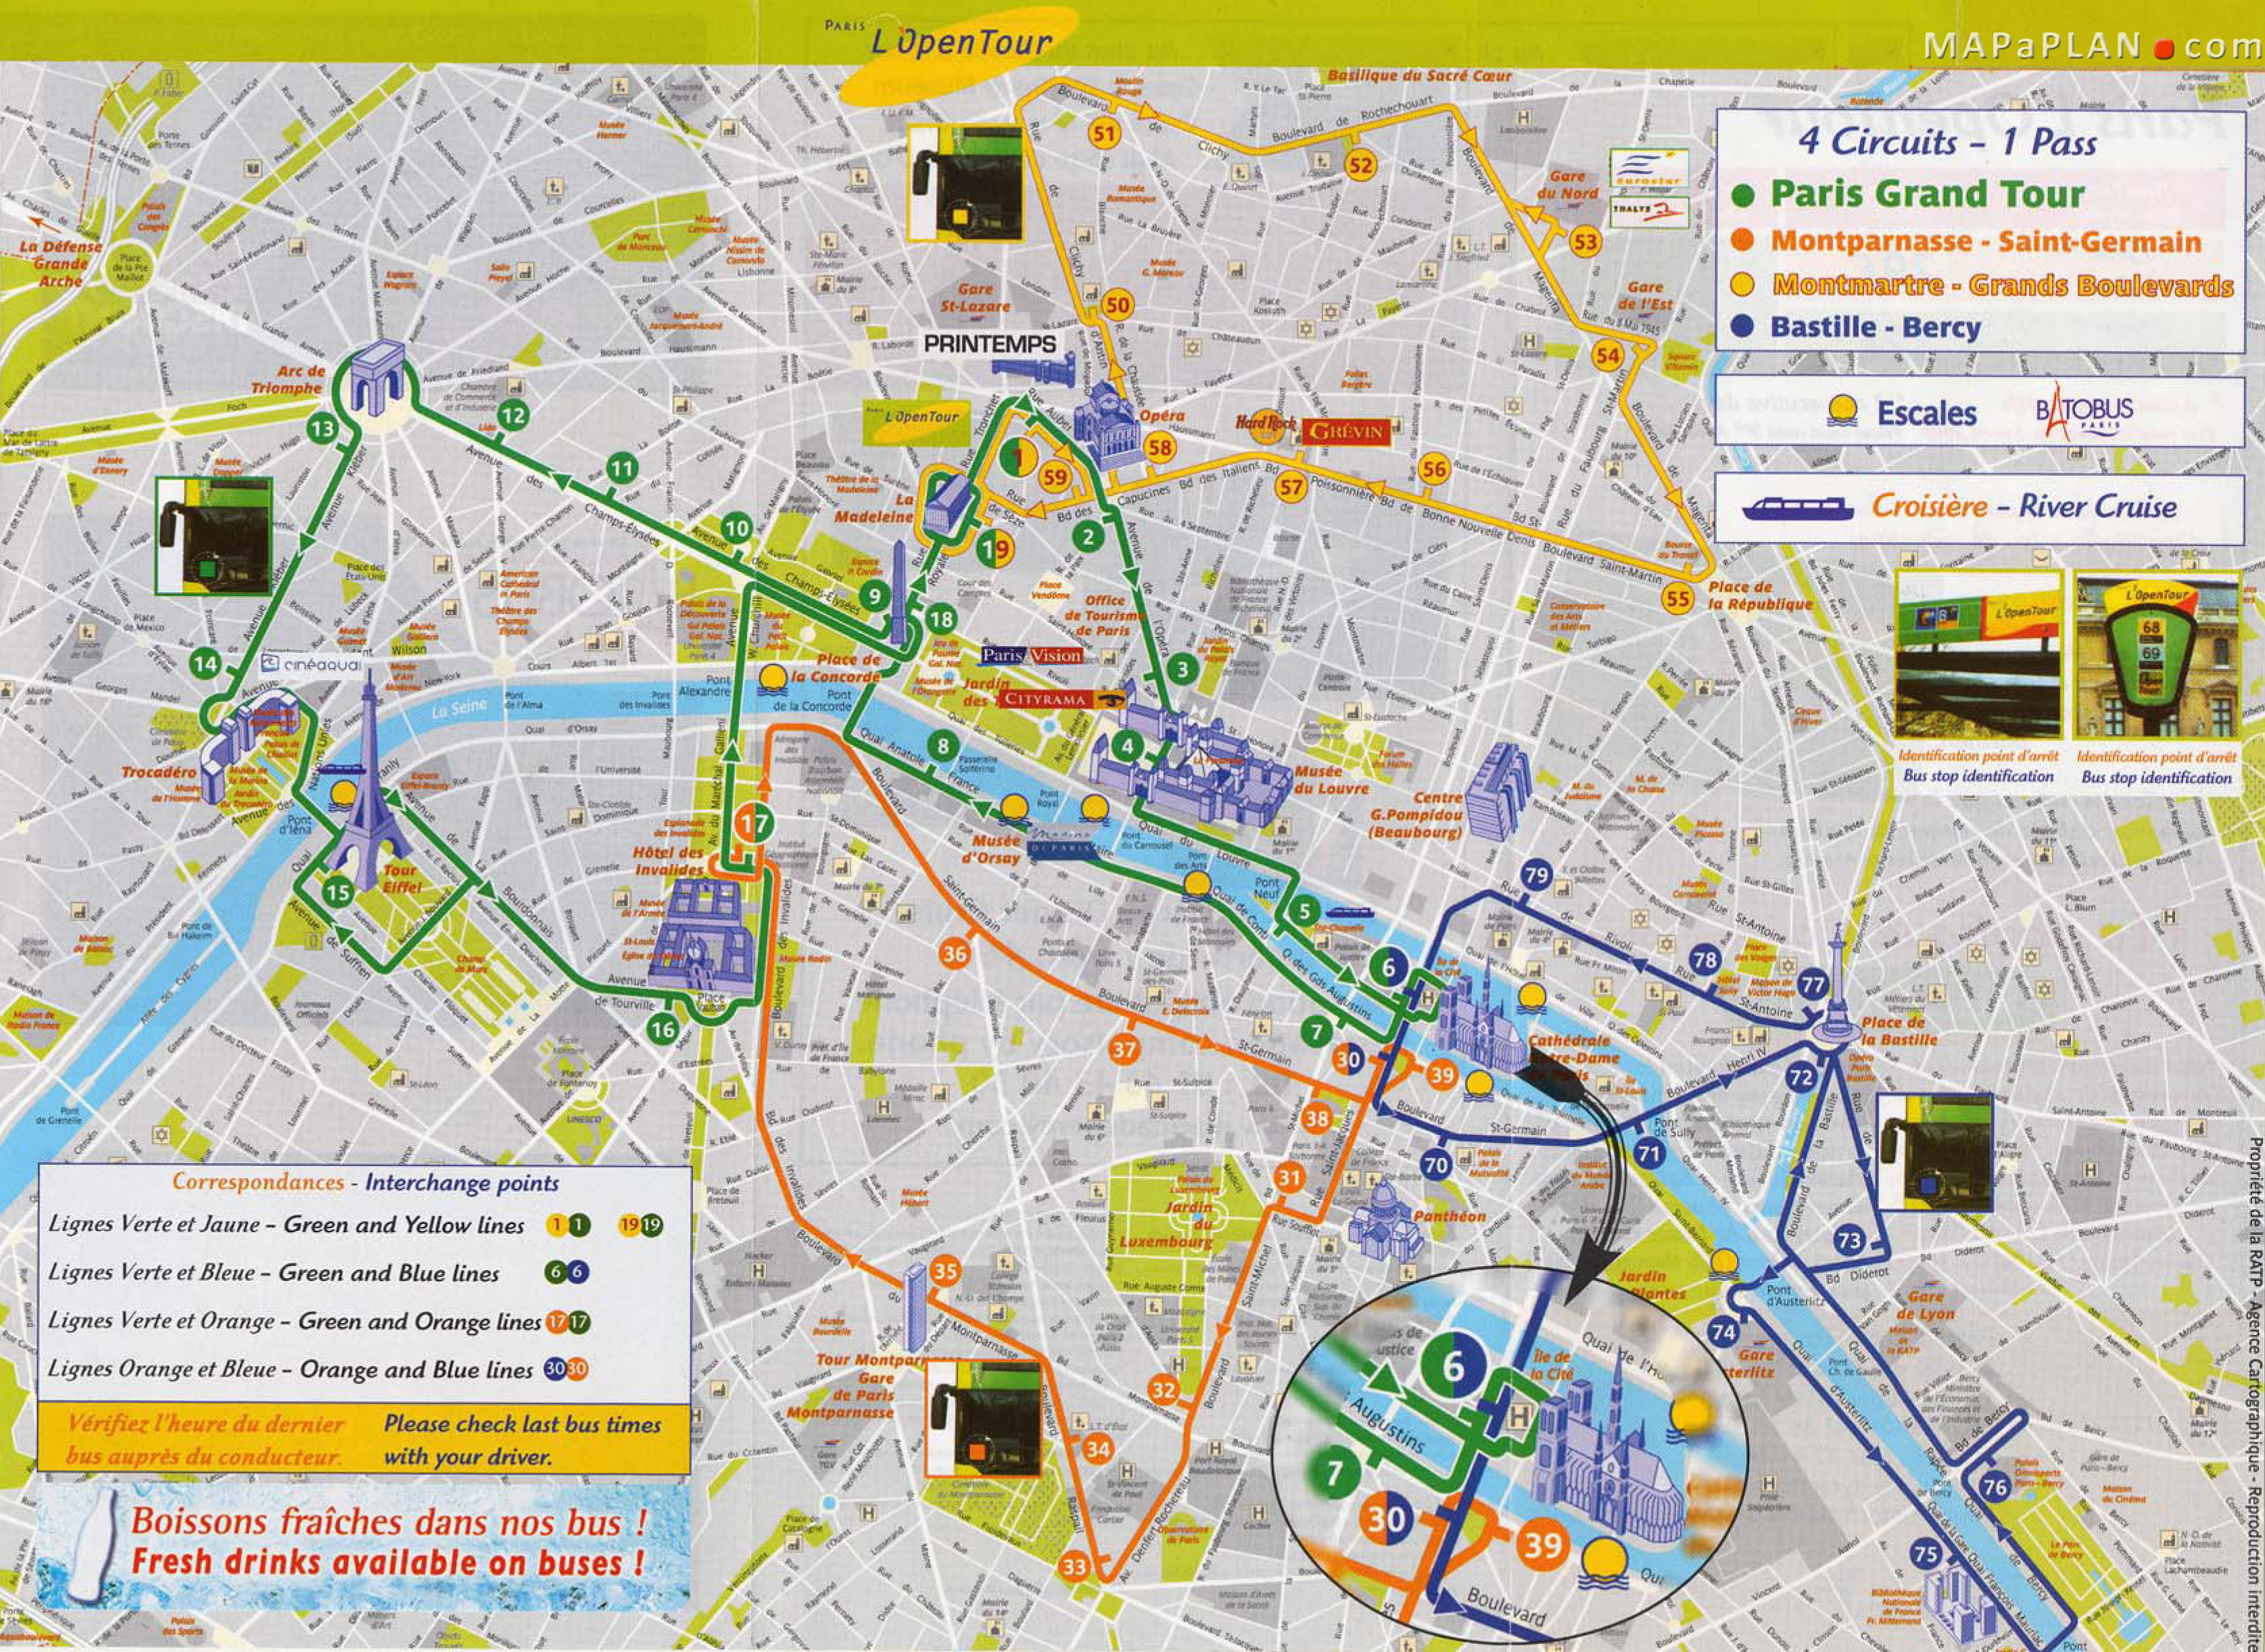 Printable Map Of Paris Download Map Paris And Attractions | Travel - Printable Map Of Paris Tourist Attractions